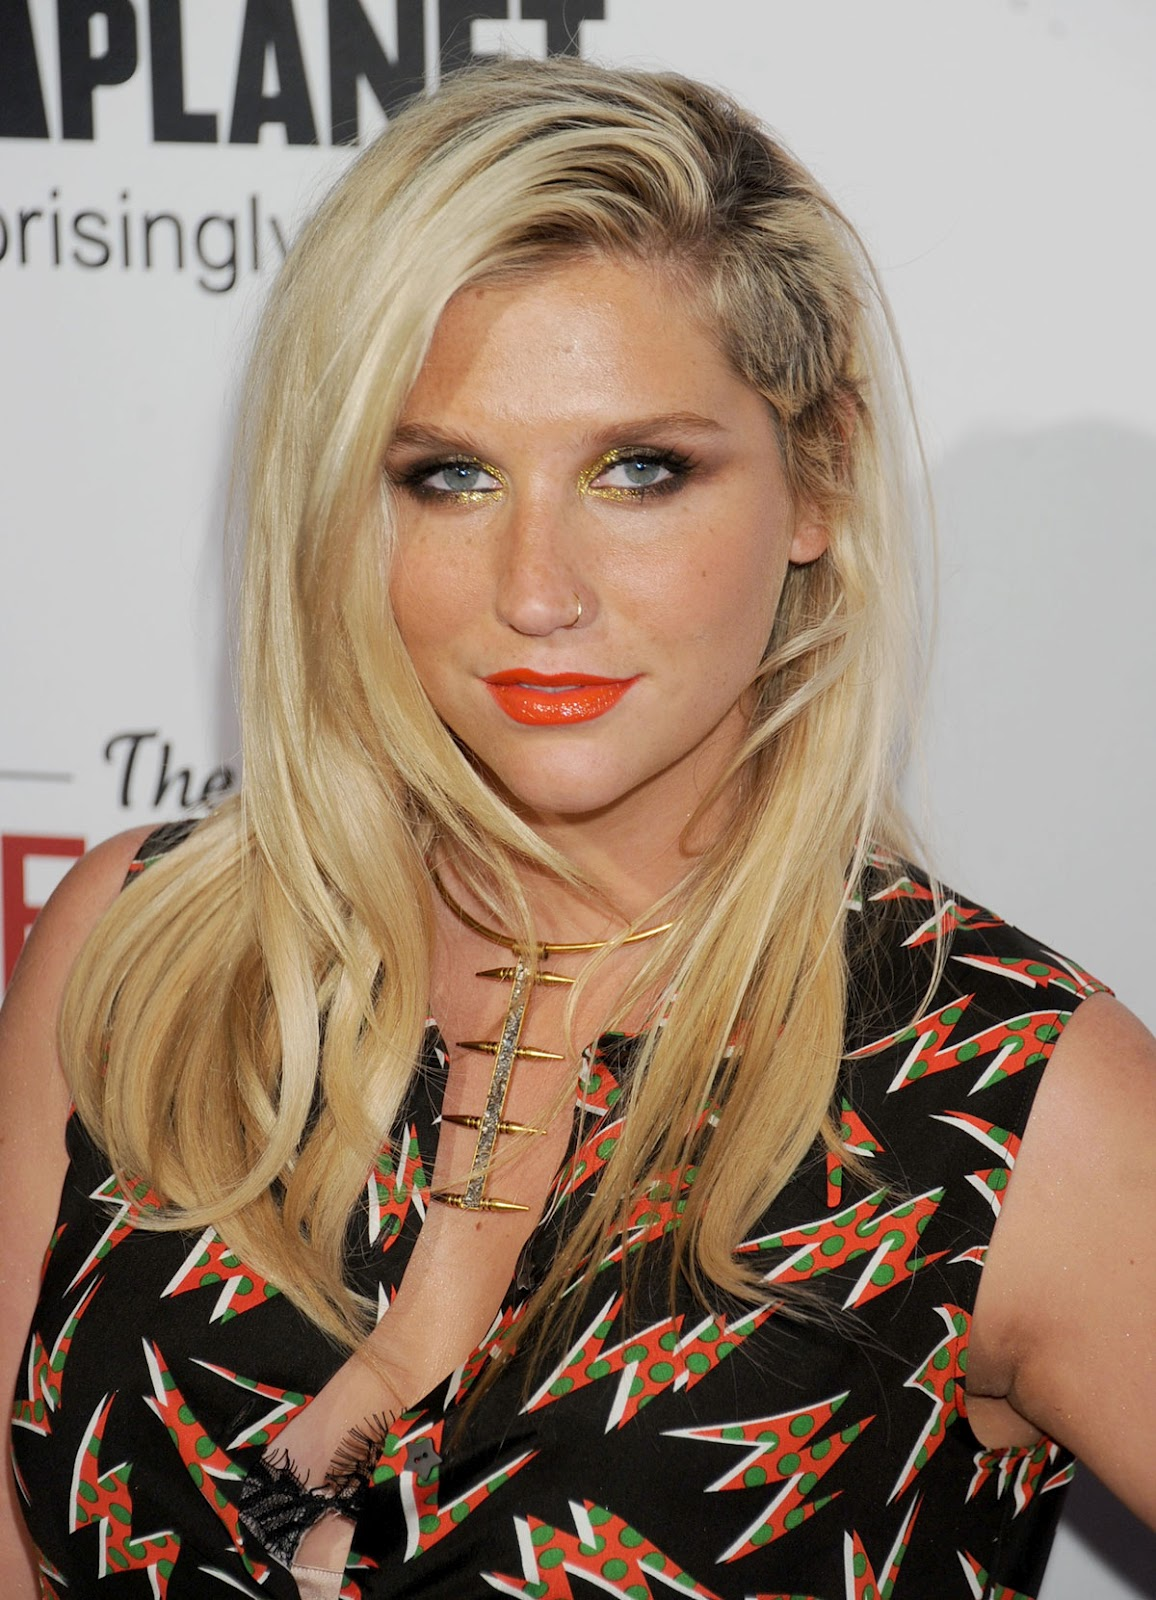 Kesha Thanks Her Supporters in an Emotional Instagram Post